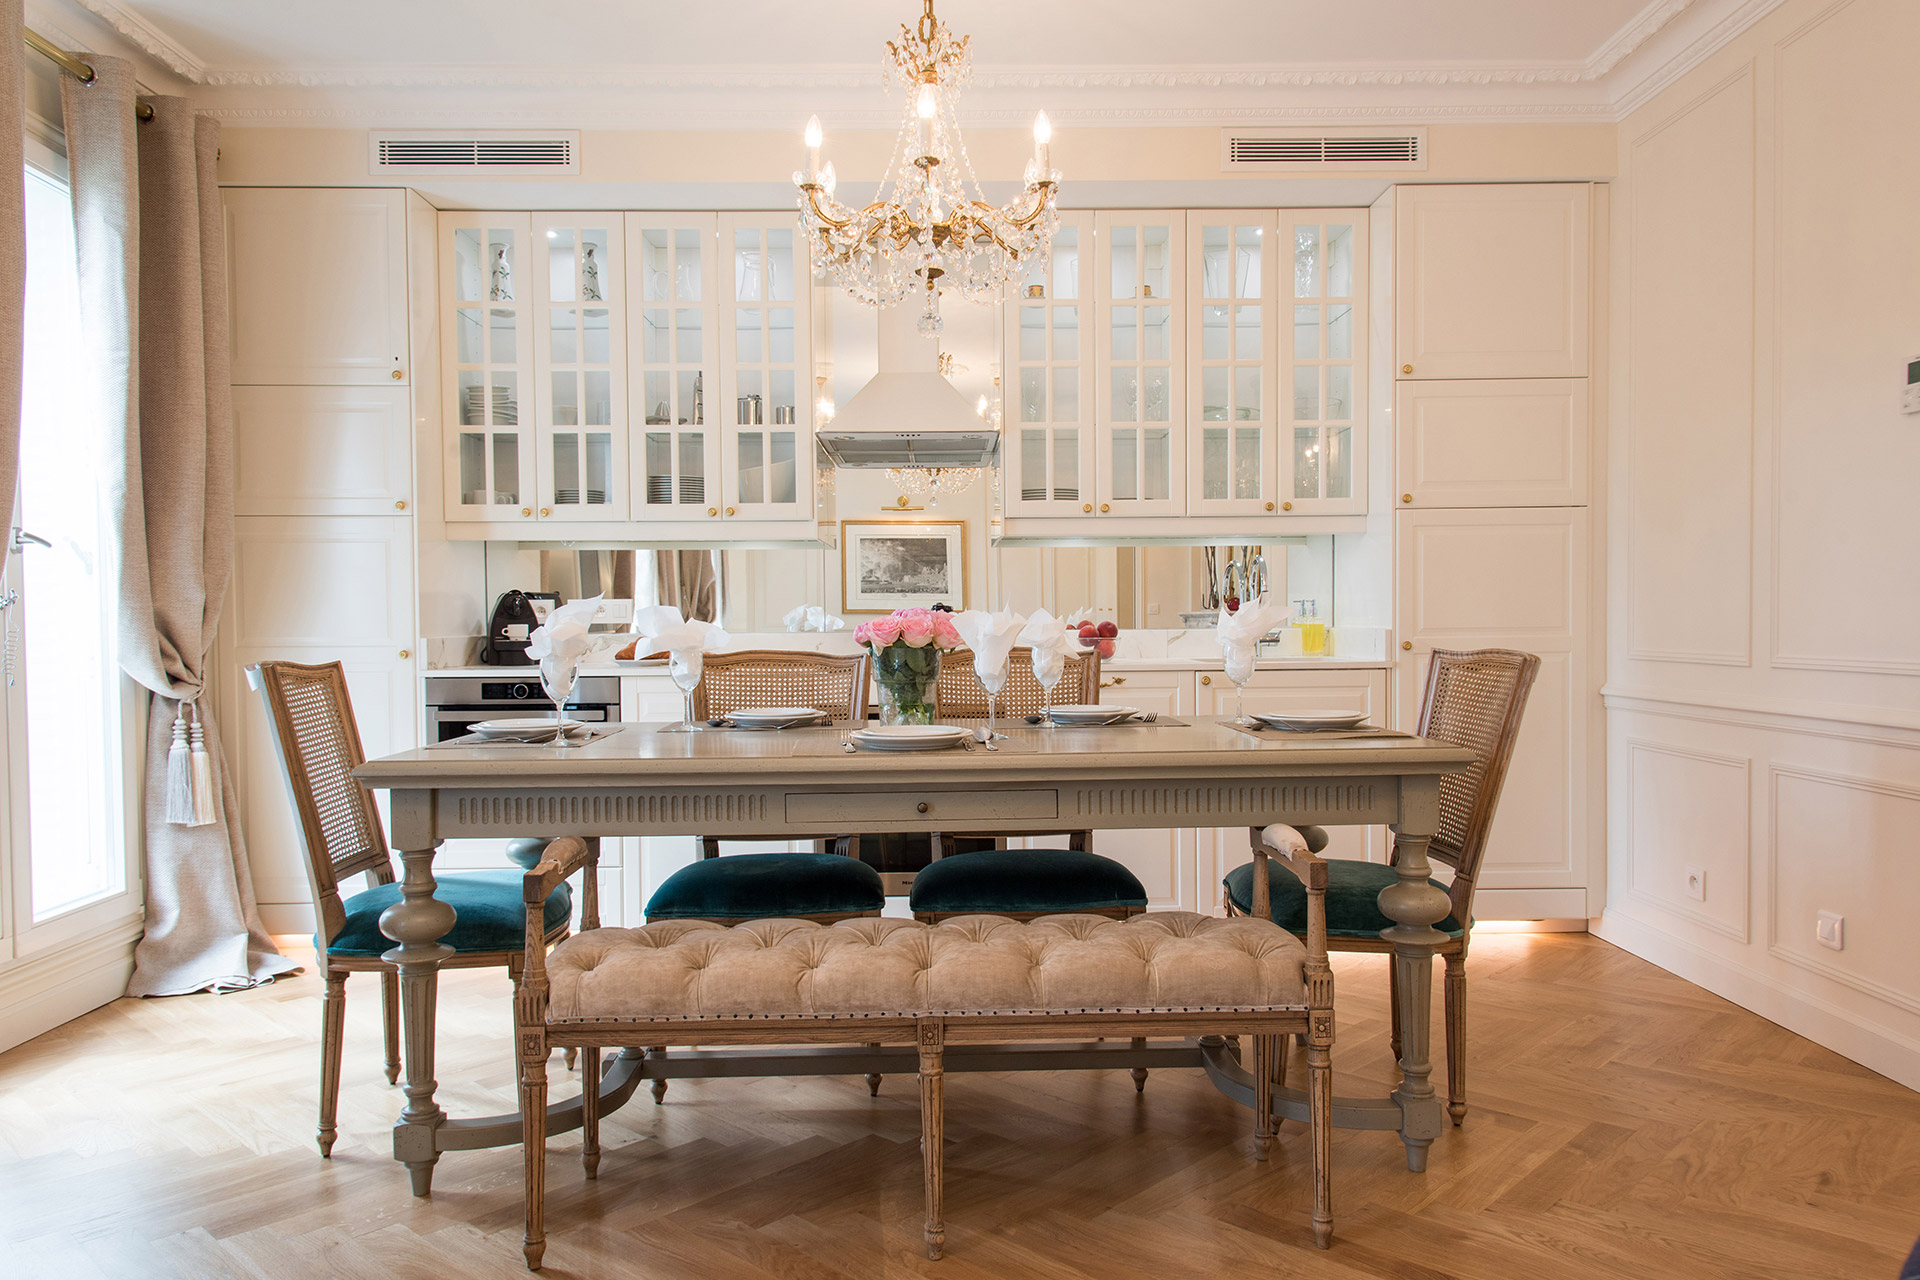 Large dining table comfortably seats 8 guests in the Merlot vacation rental offered by Paris Perfect